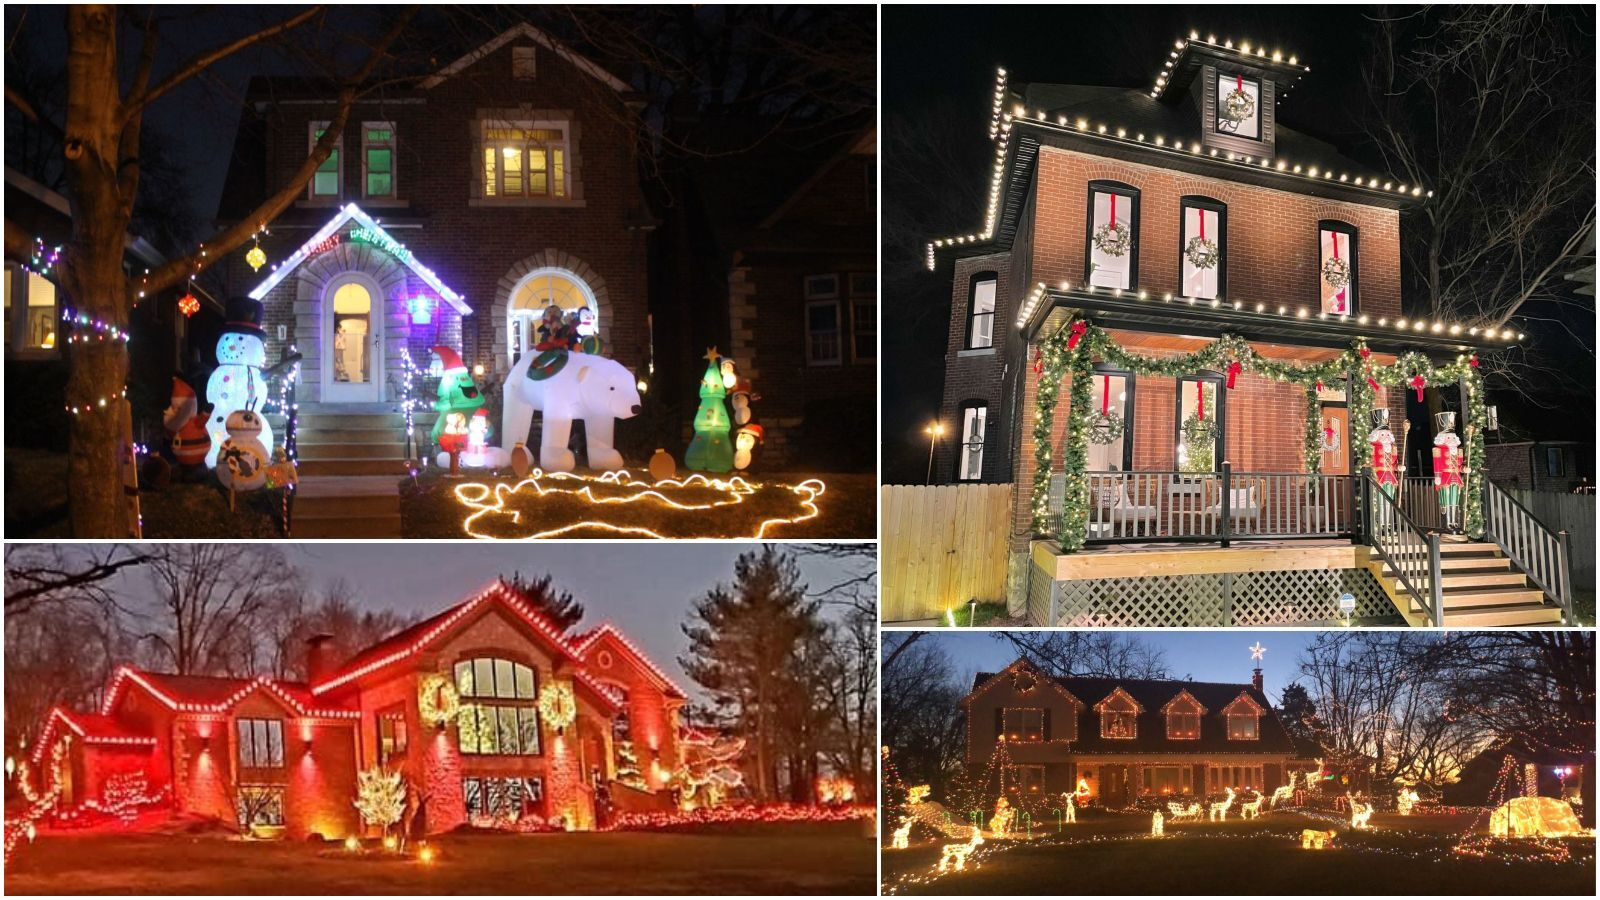 'Is your house on fire, Clark?' Readers submit photos of their festive holiday light displays